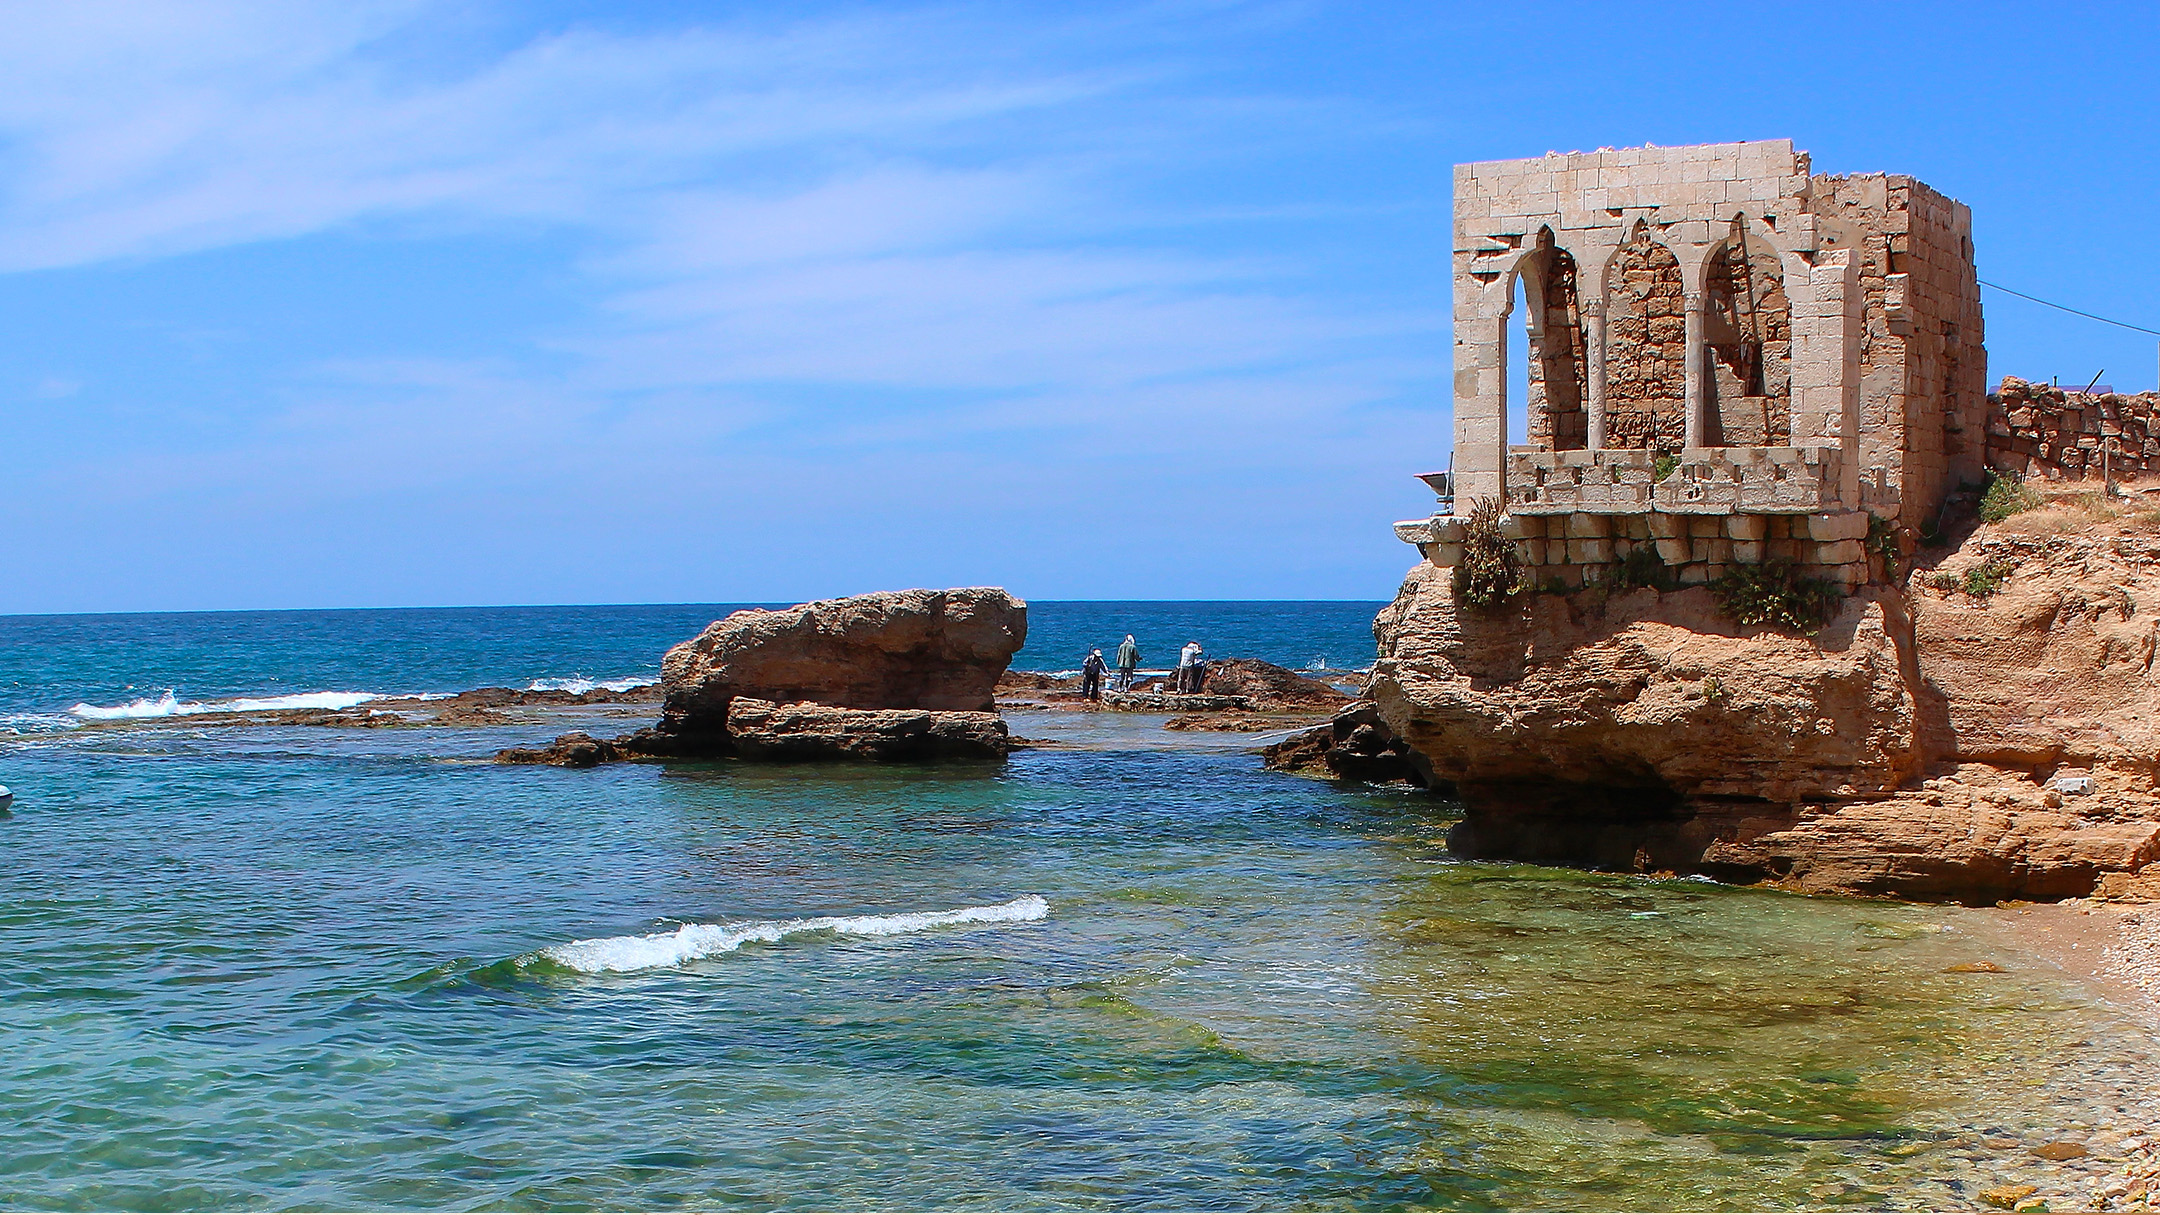 Batroun sea side, Lebanon